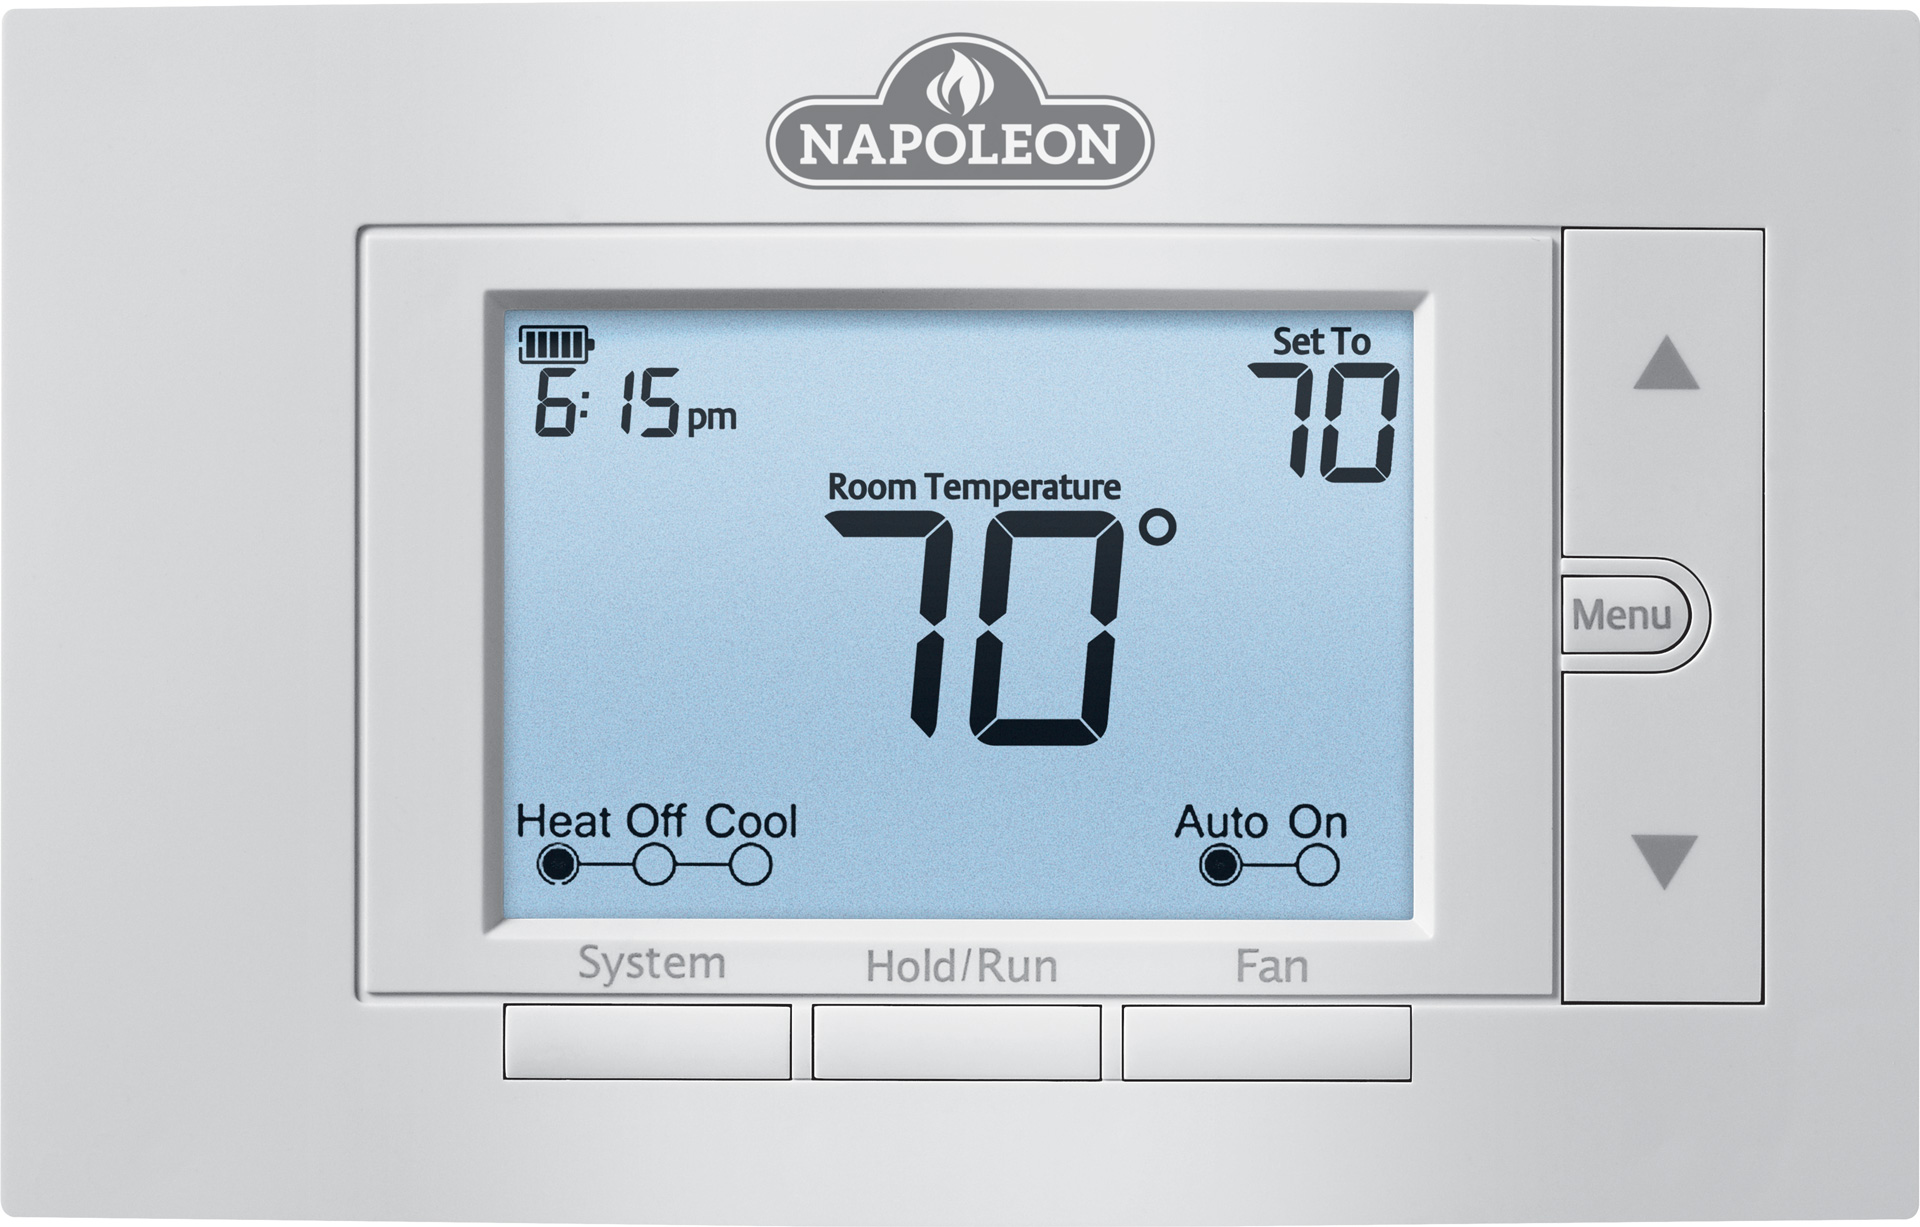 The Napoleon NT86 Thermostat